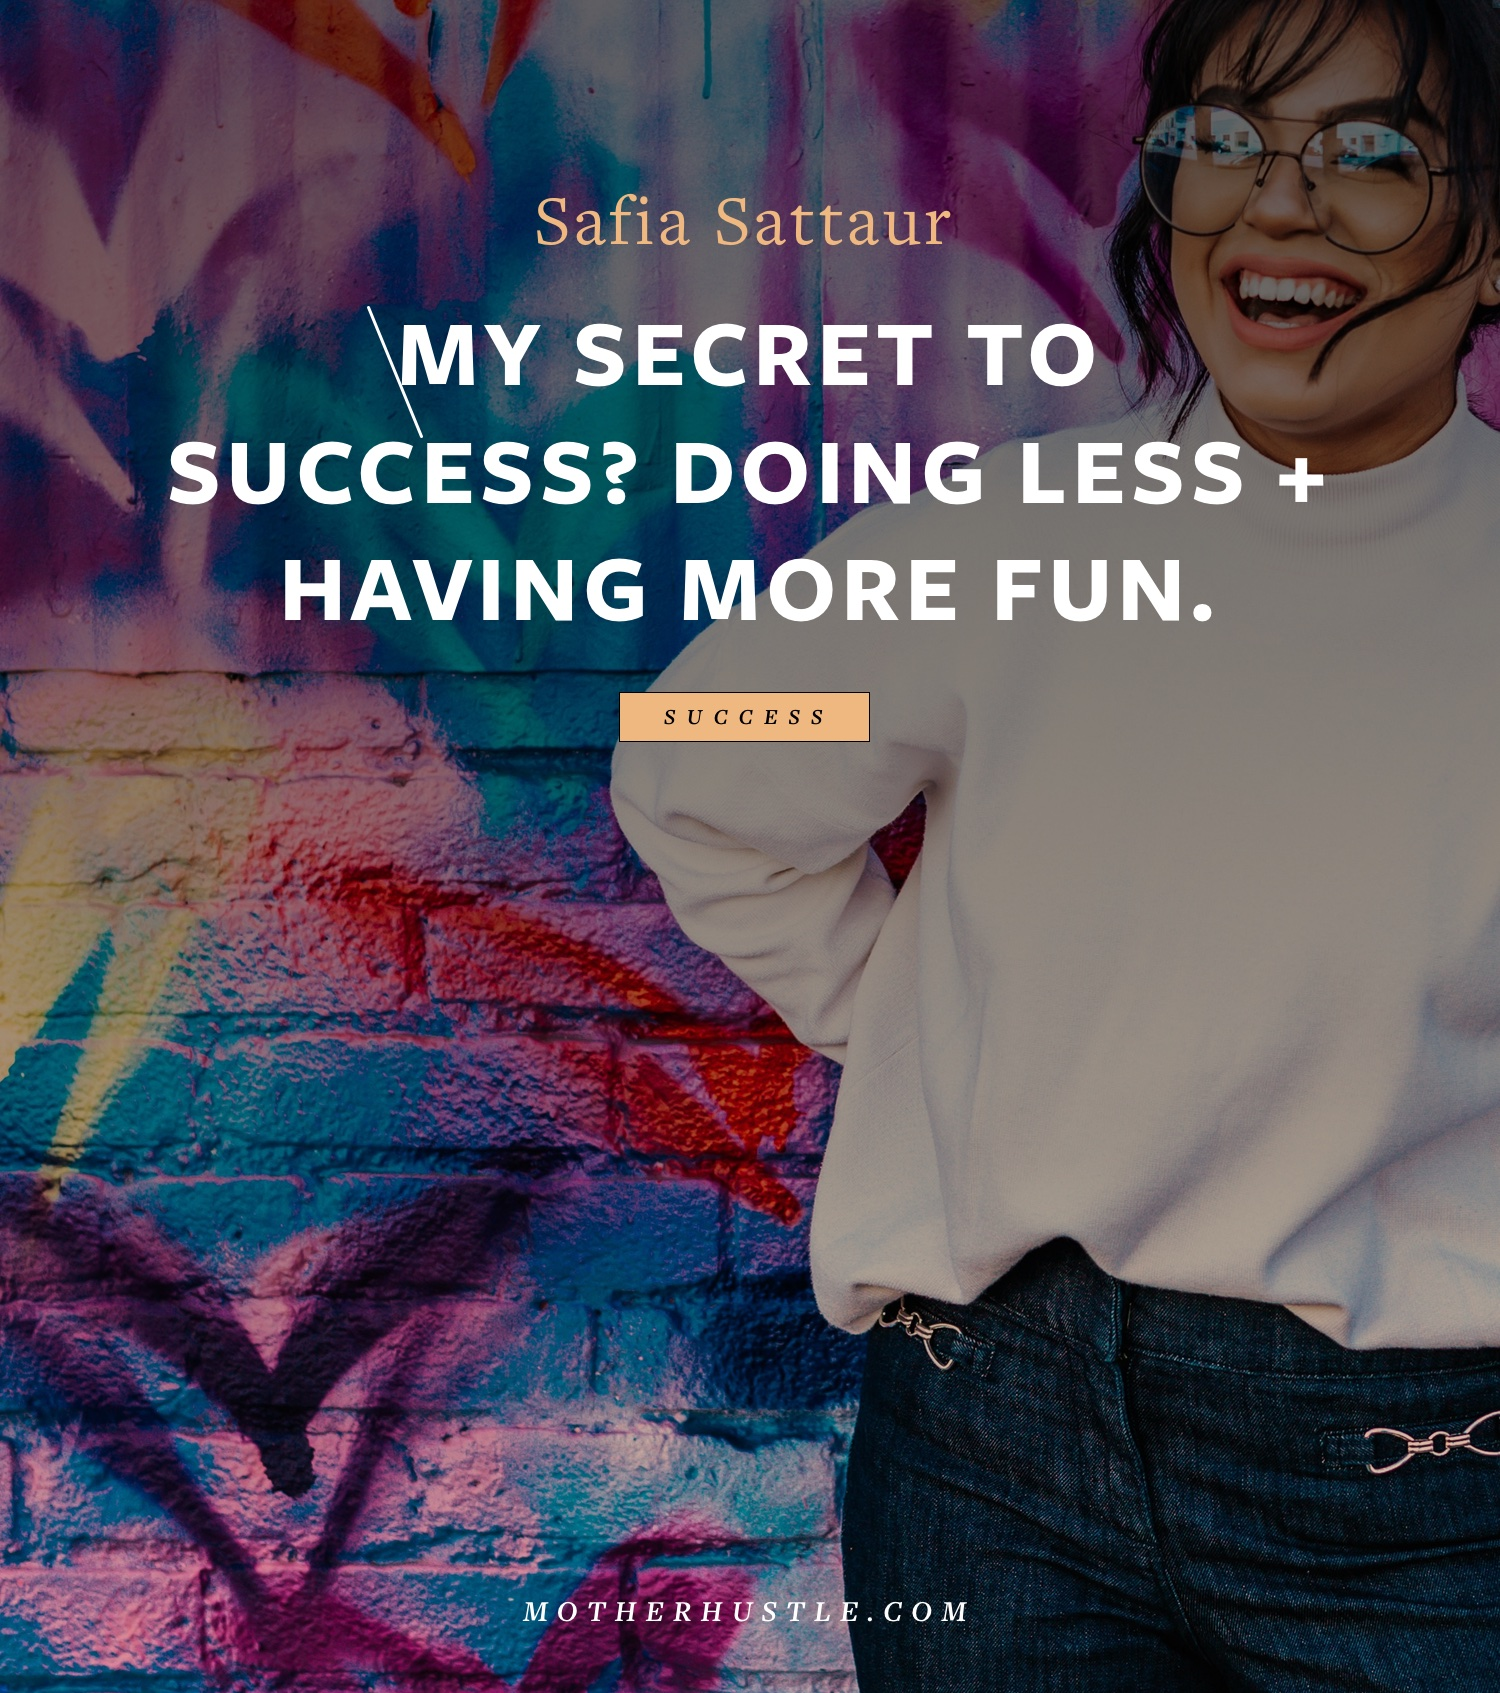 My Secret to Success? Doing Less + Having More Fun - By Safia Sattaur for MotherHustle